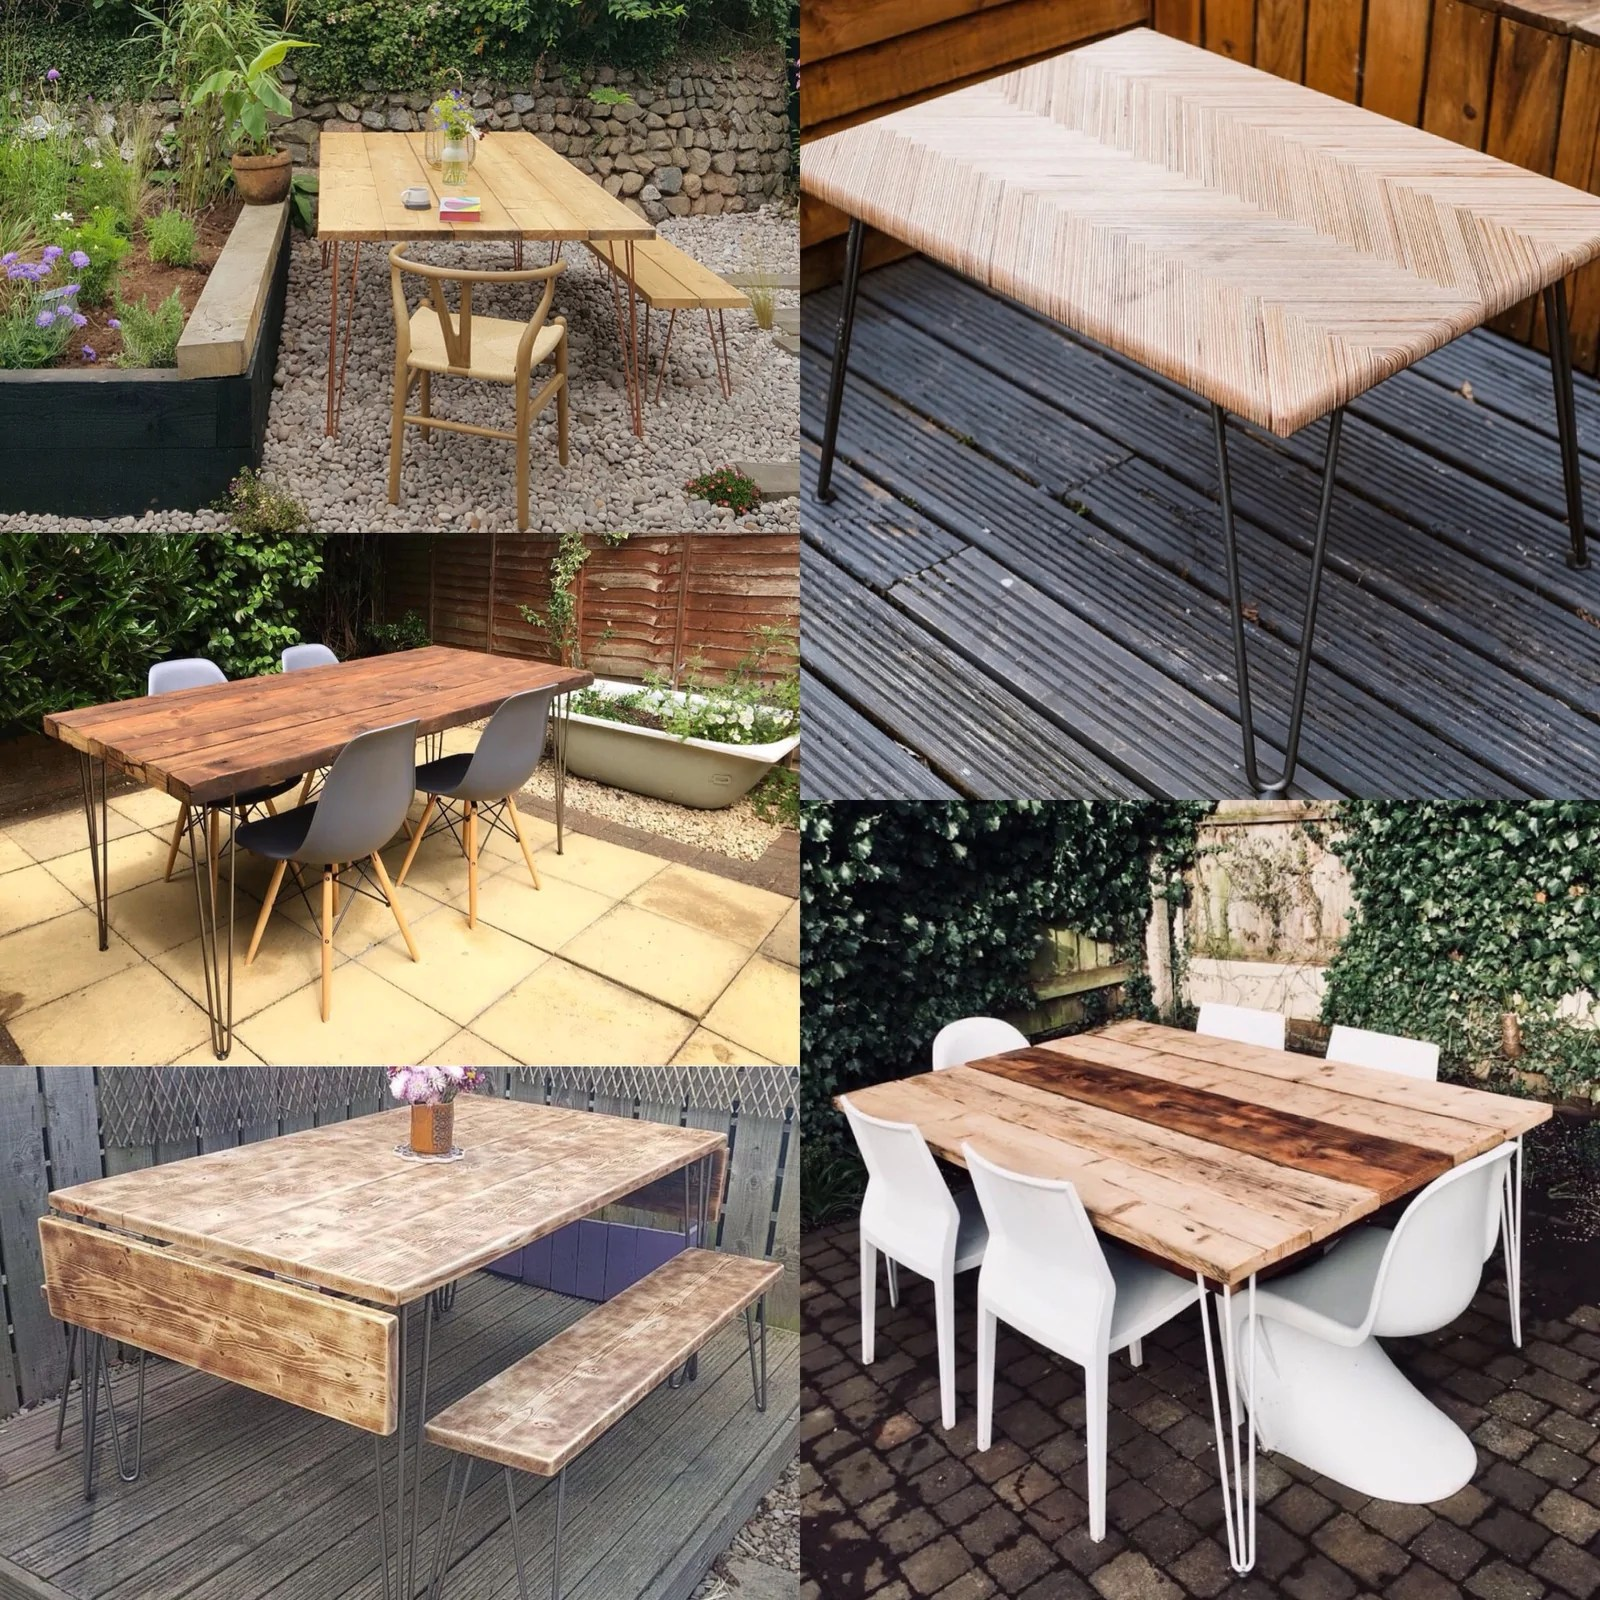 Make Your Own Diy Table Outdoor Table The Hairpin Leg Co